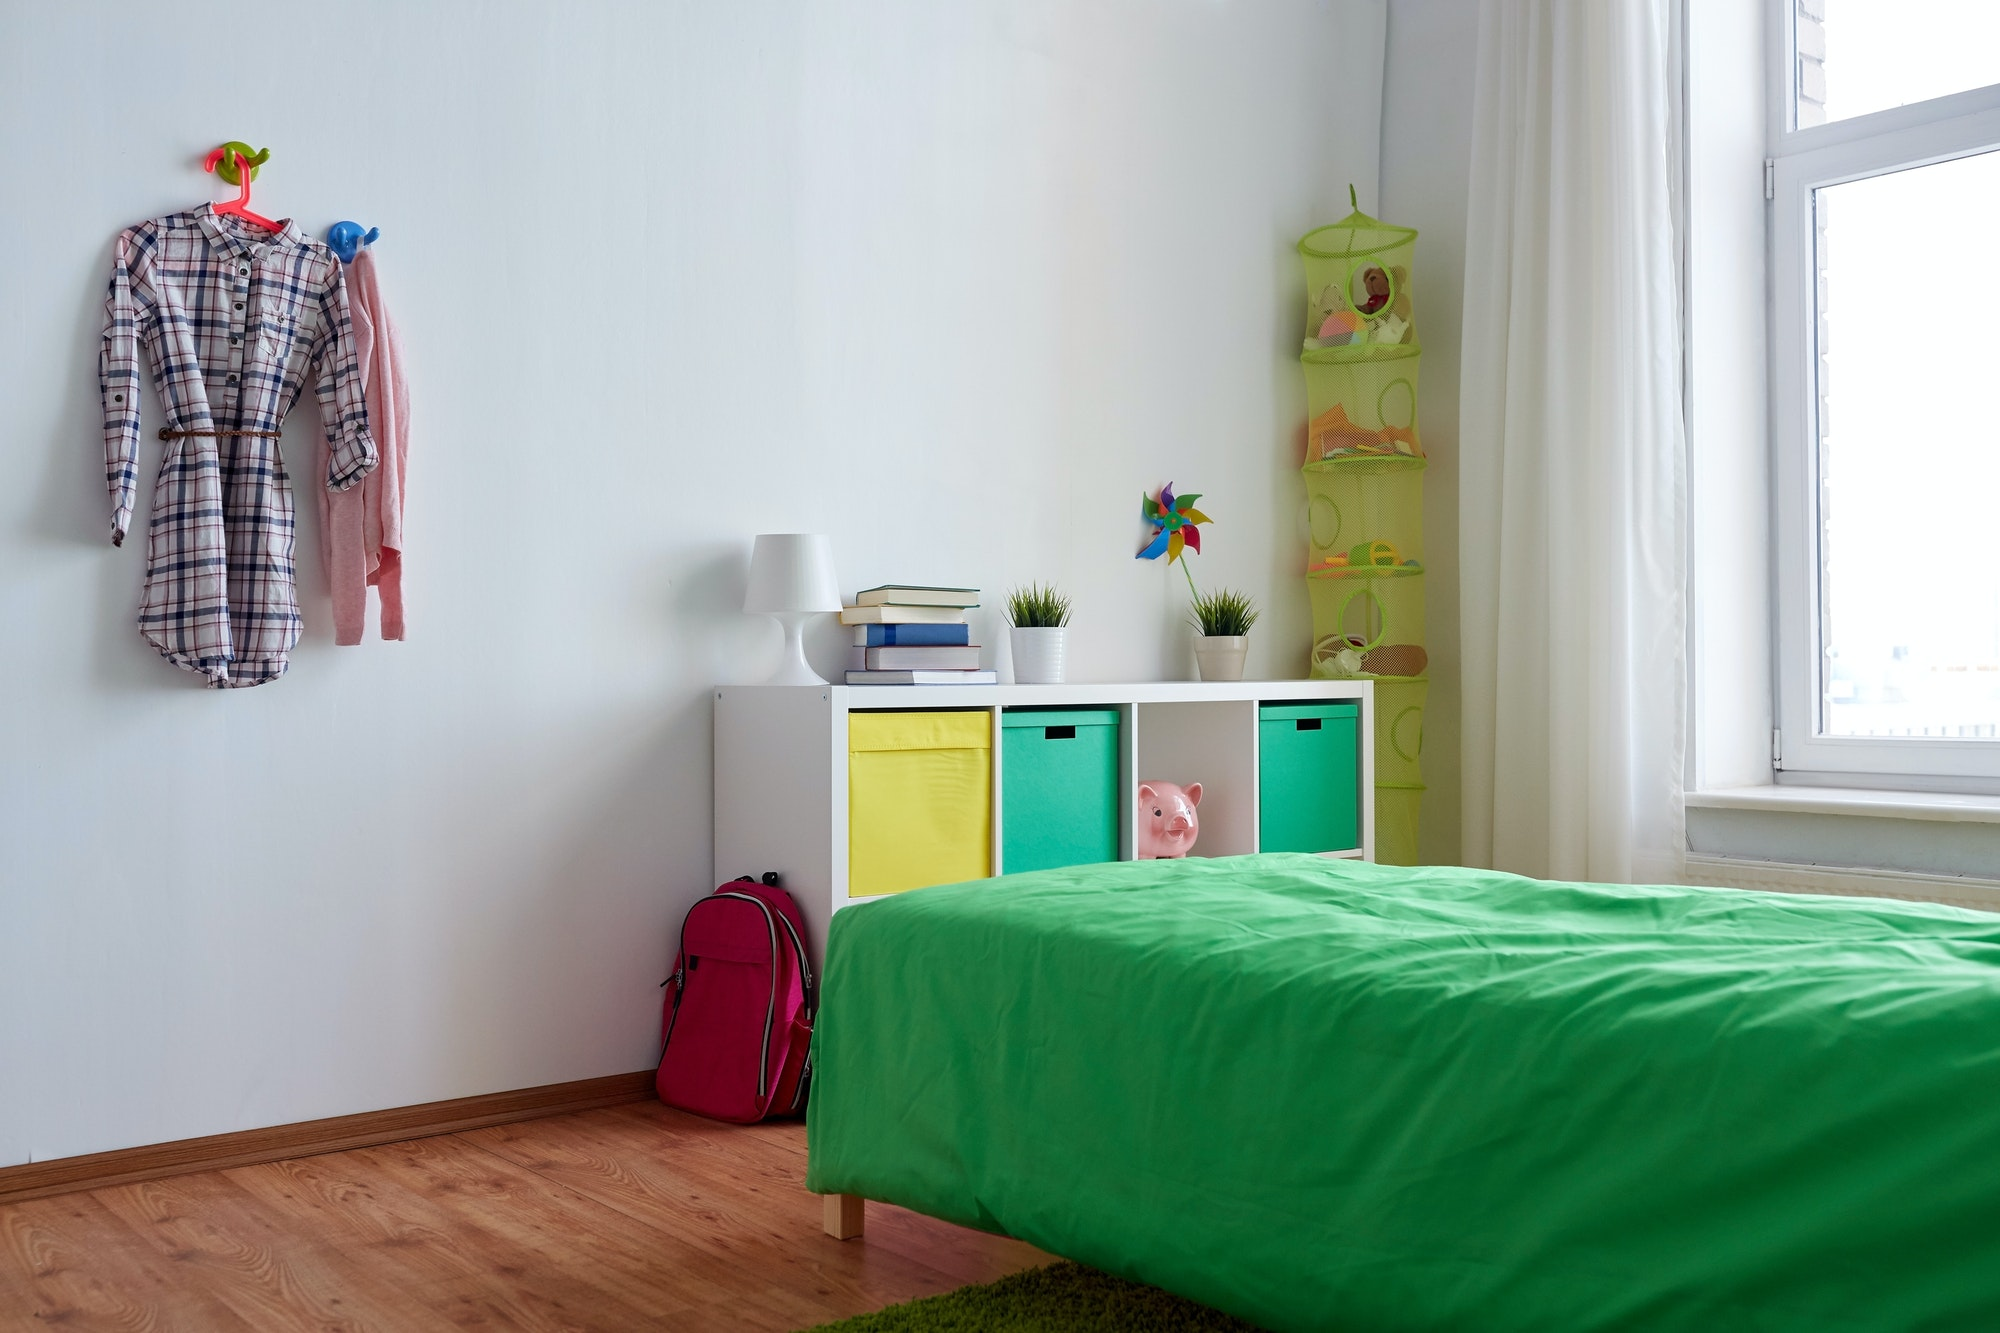 kids room interior with bed, rack and accessories